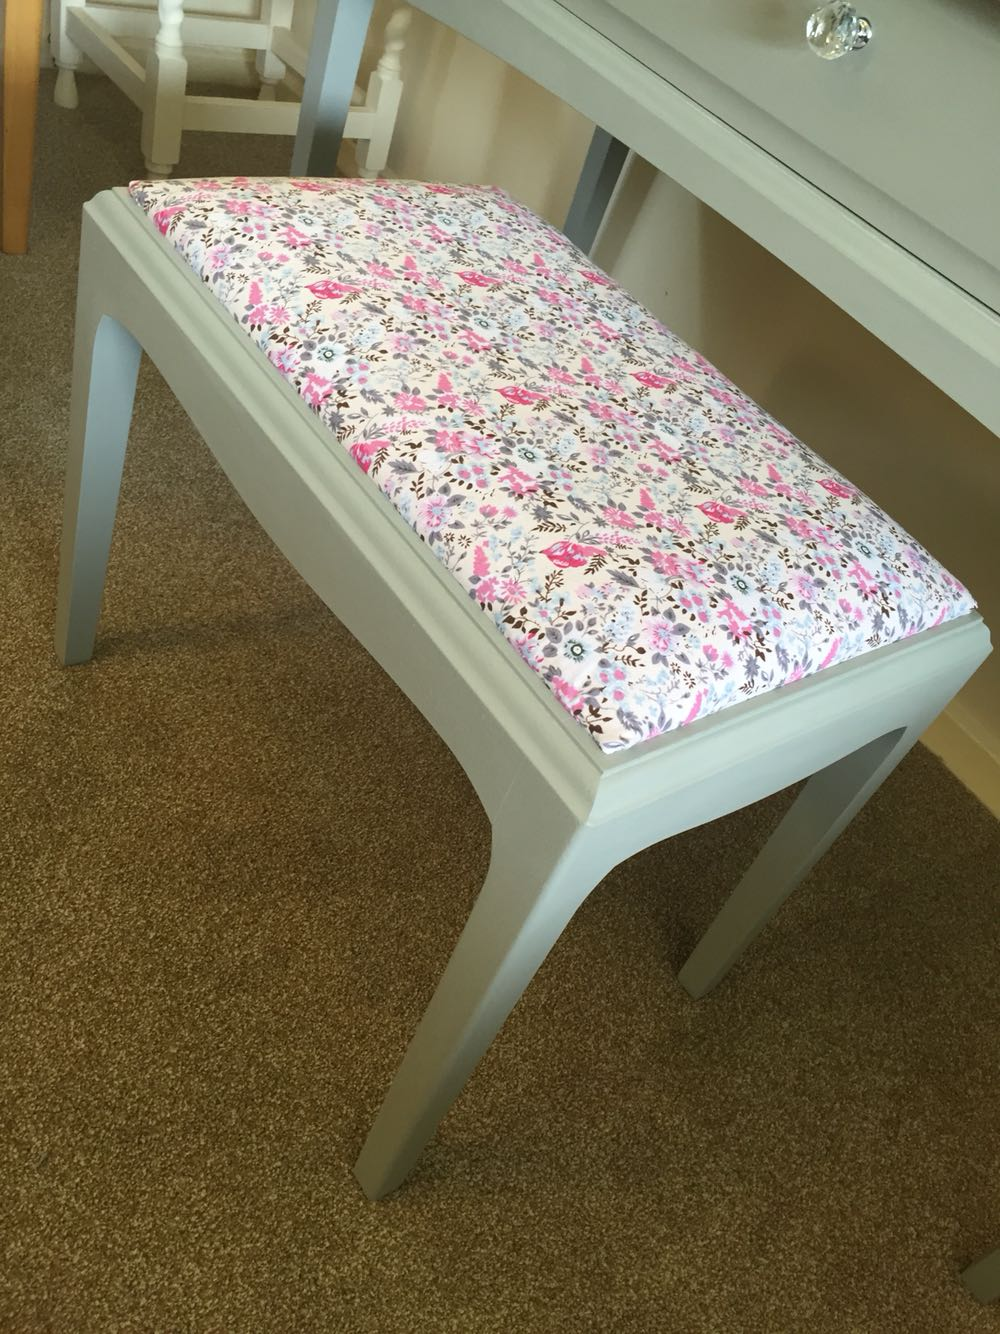 Stag Stool For Sale In Uk 66 Second Hand Stag Stools